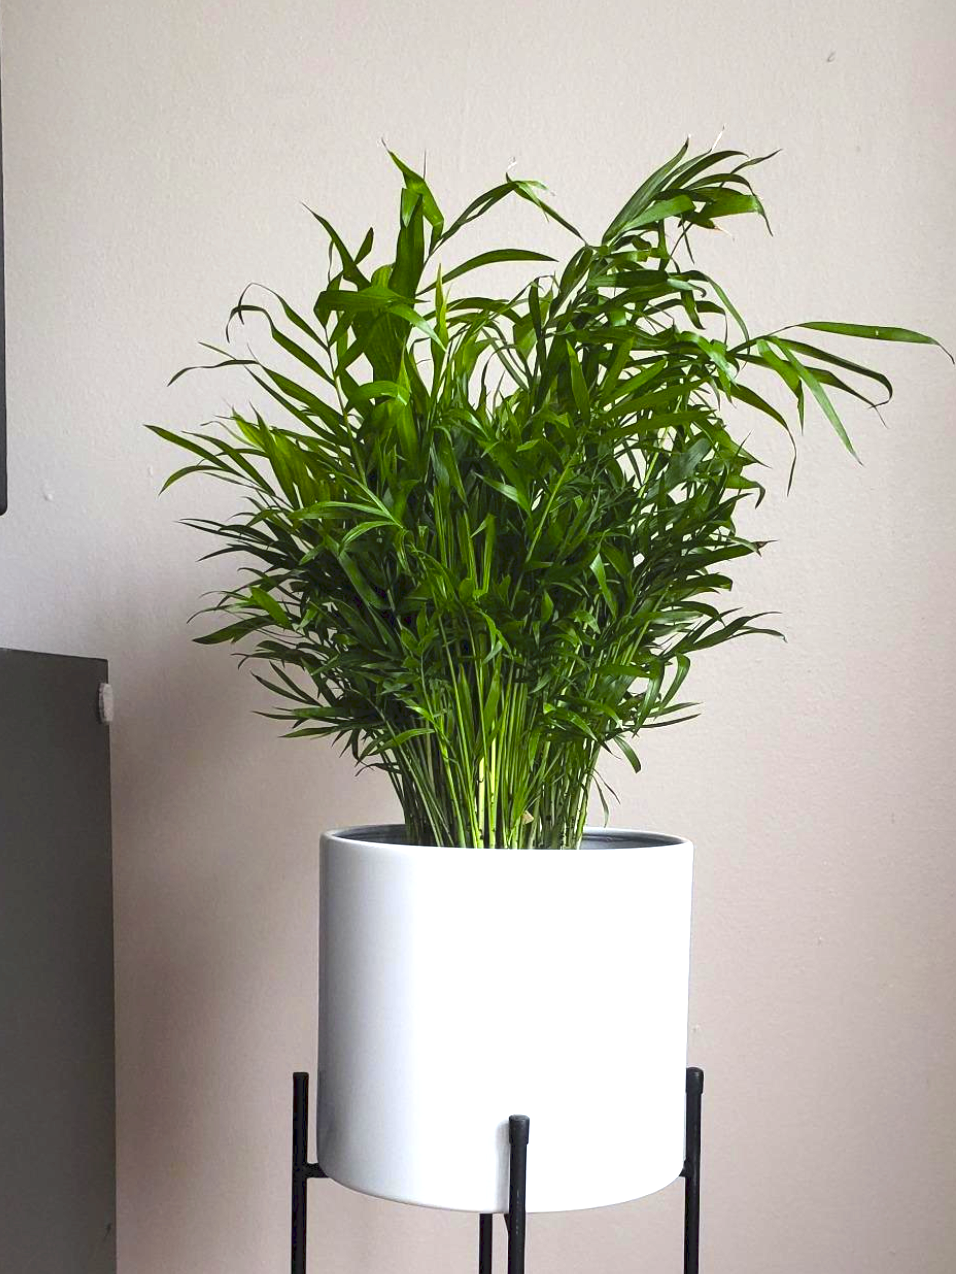 The palm plant looks like green branches that stick straight up out of the soil. It's about two feet tall and sitting inside of a planter on top of a plant stand.